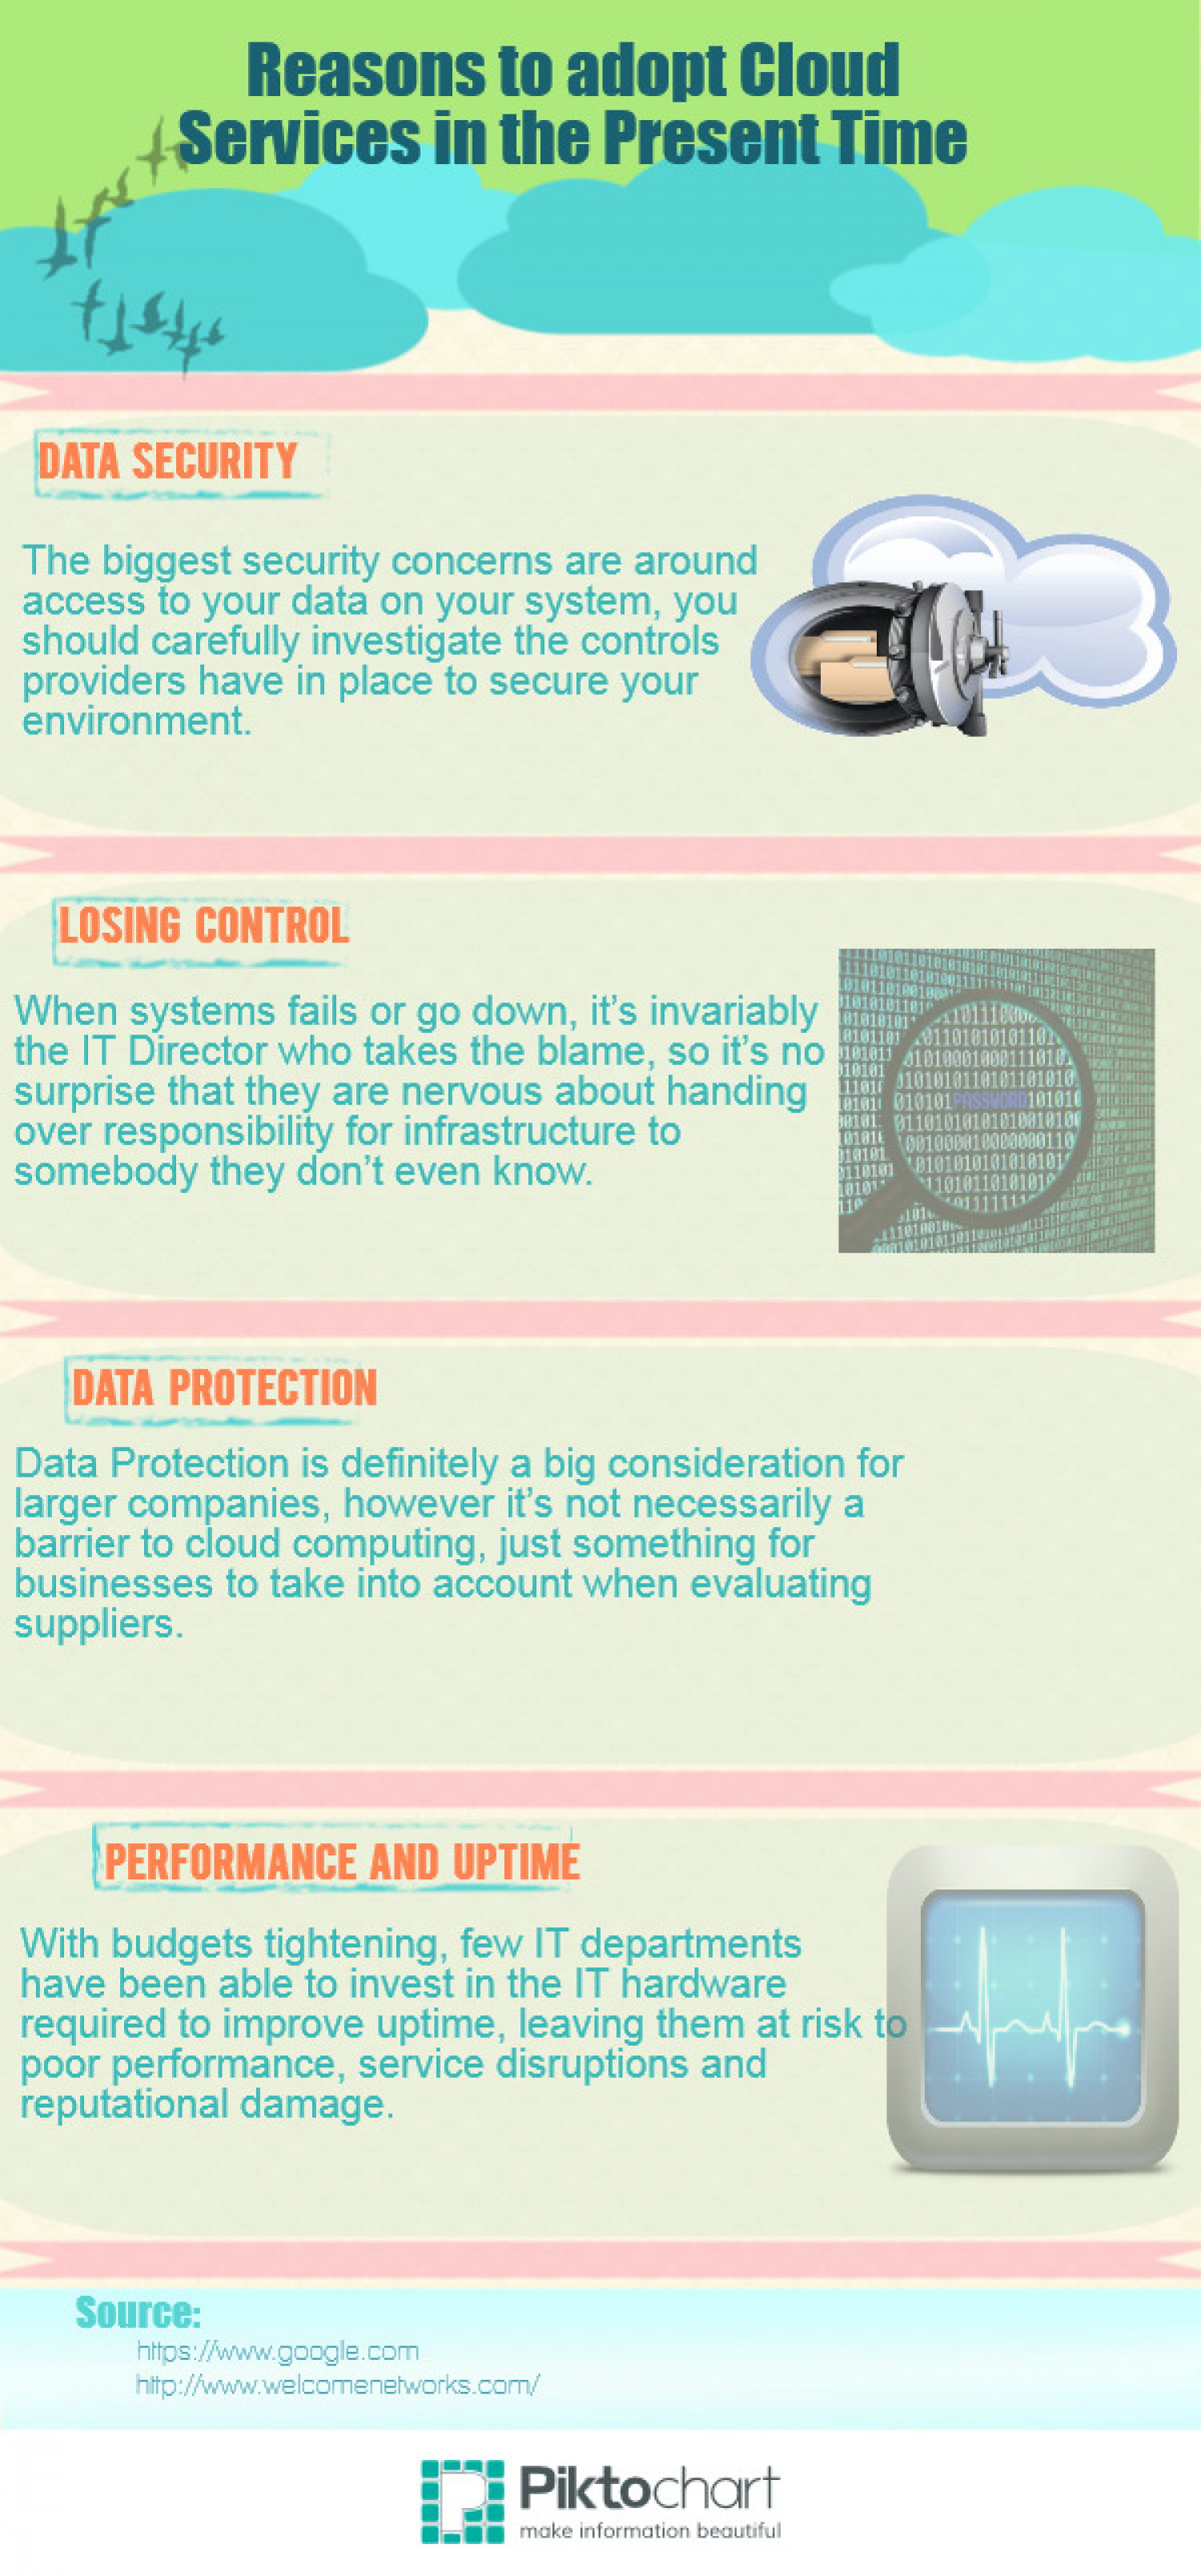 Reasons to adopt Cloud Services In the Present Time Infographic